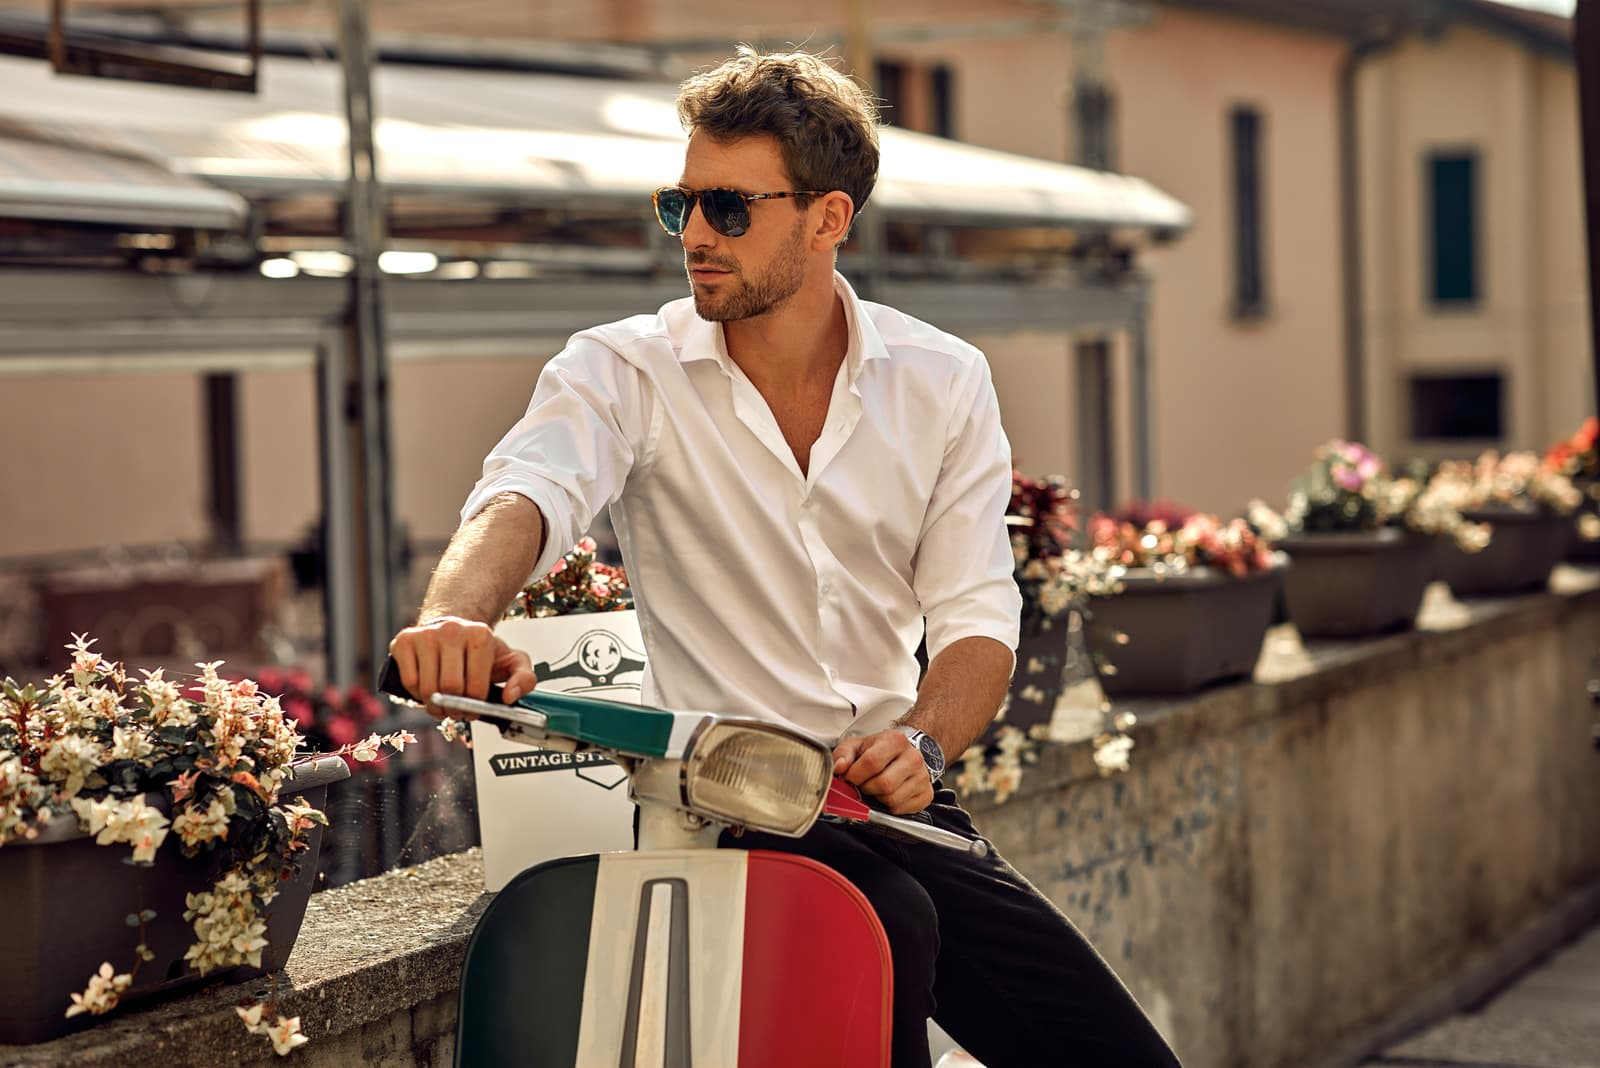 man wearing white shirt and sitting on classic scooter